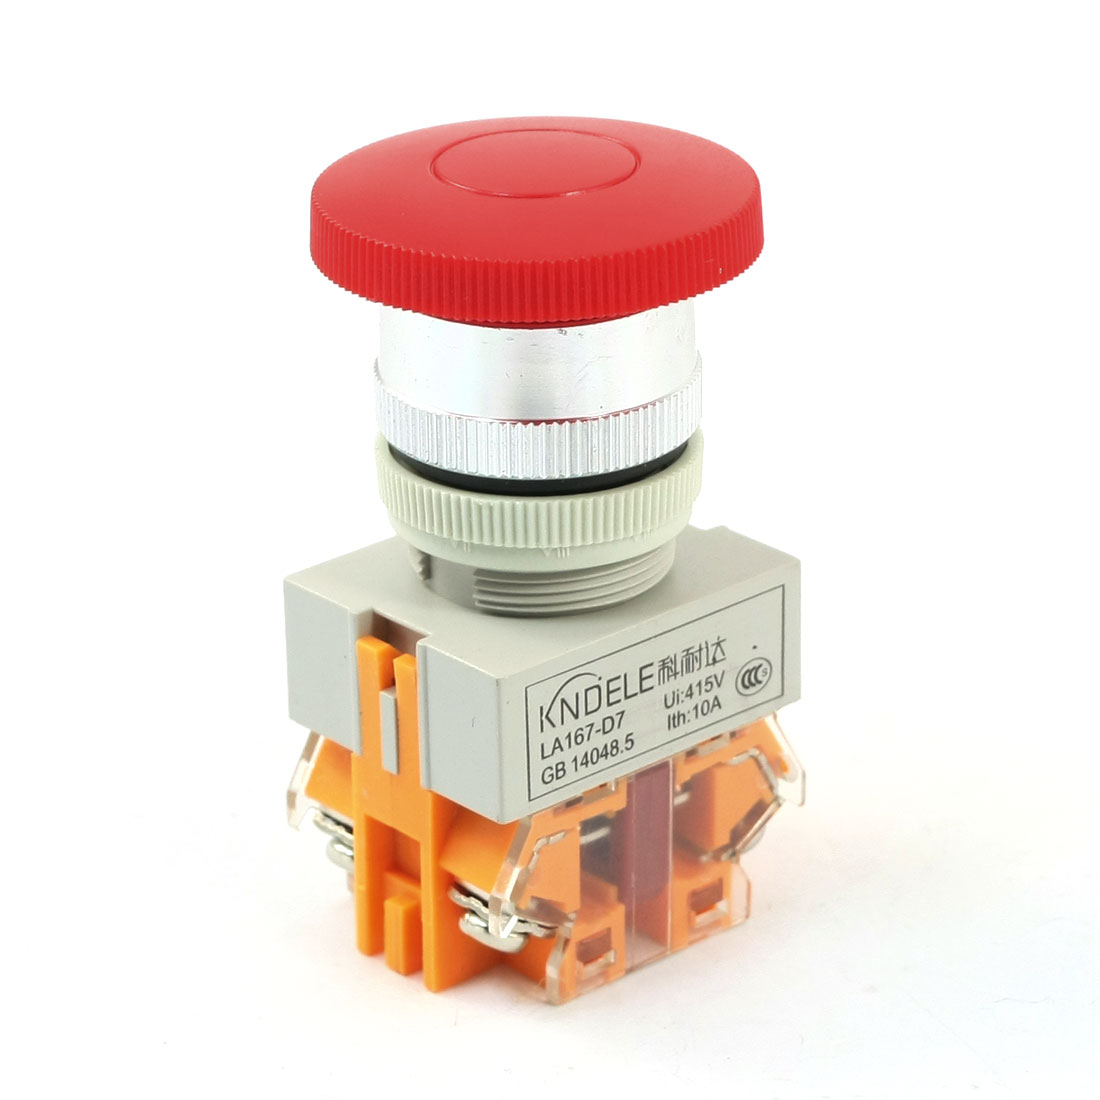 DPST-Momentary-415V-Ui-10A-Ith-Red-Mushroom-Head-Pushbutton-Switch